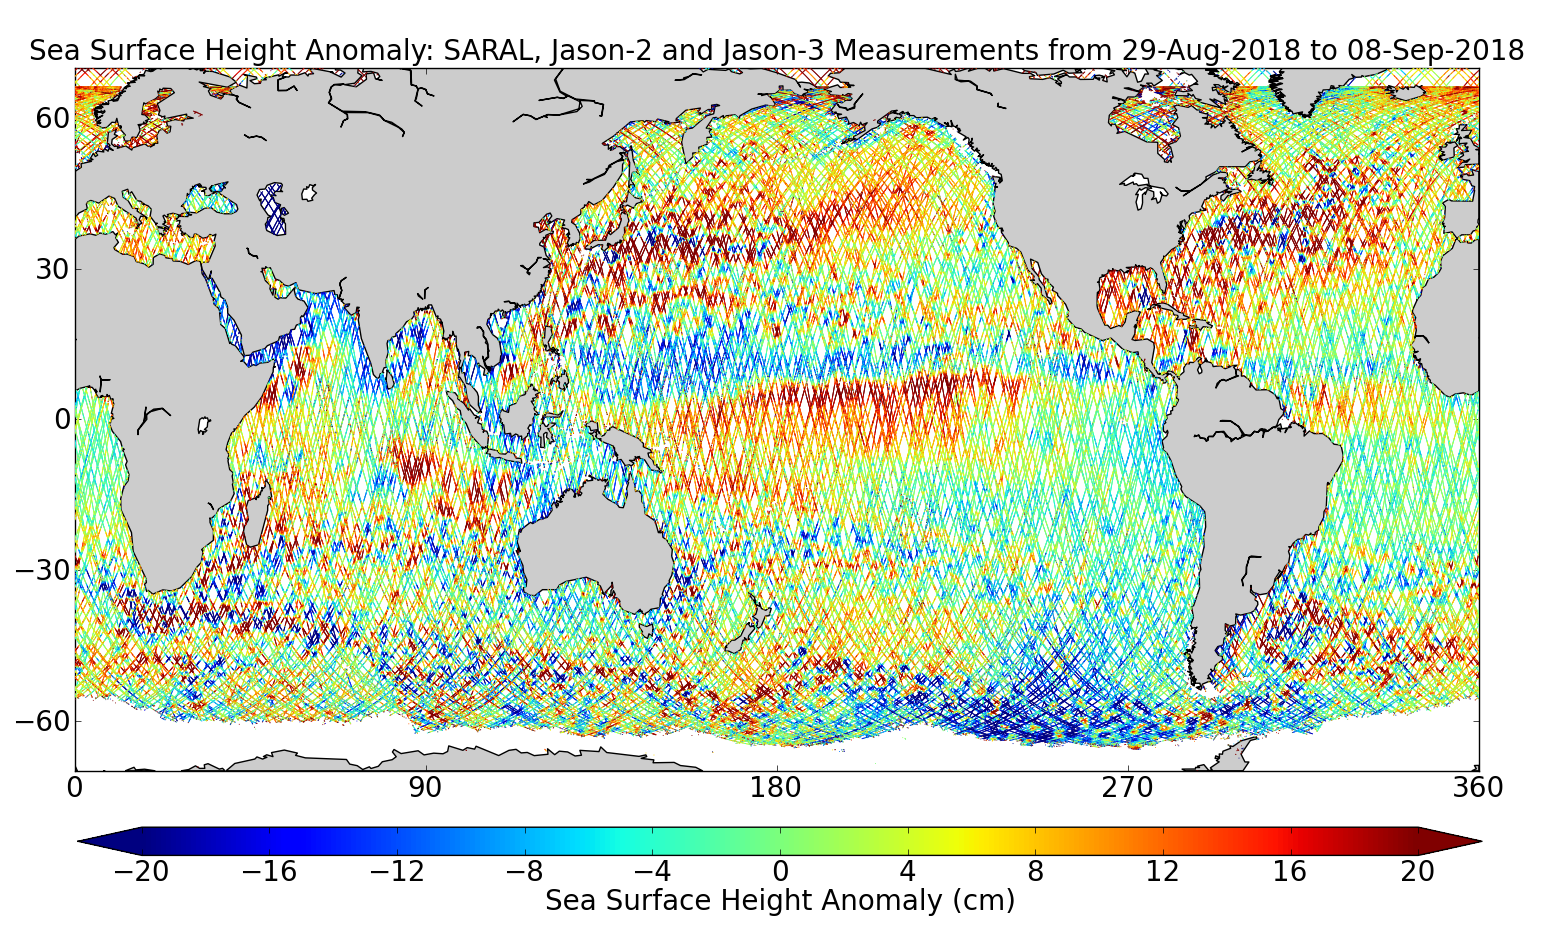 Sea Surface Height Anomaly: SARAL, Jason-2 and Jason-3 Measurements from 29-Aug-2018 to 08-Sep-2018